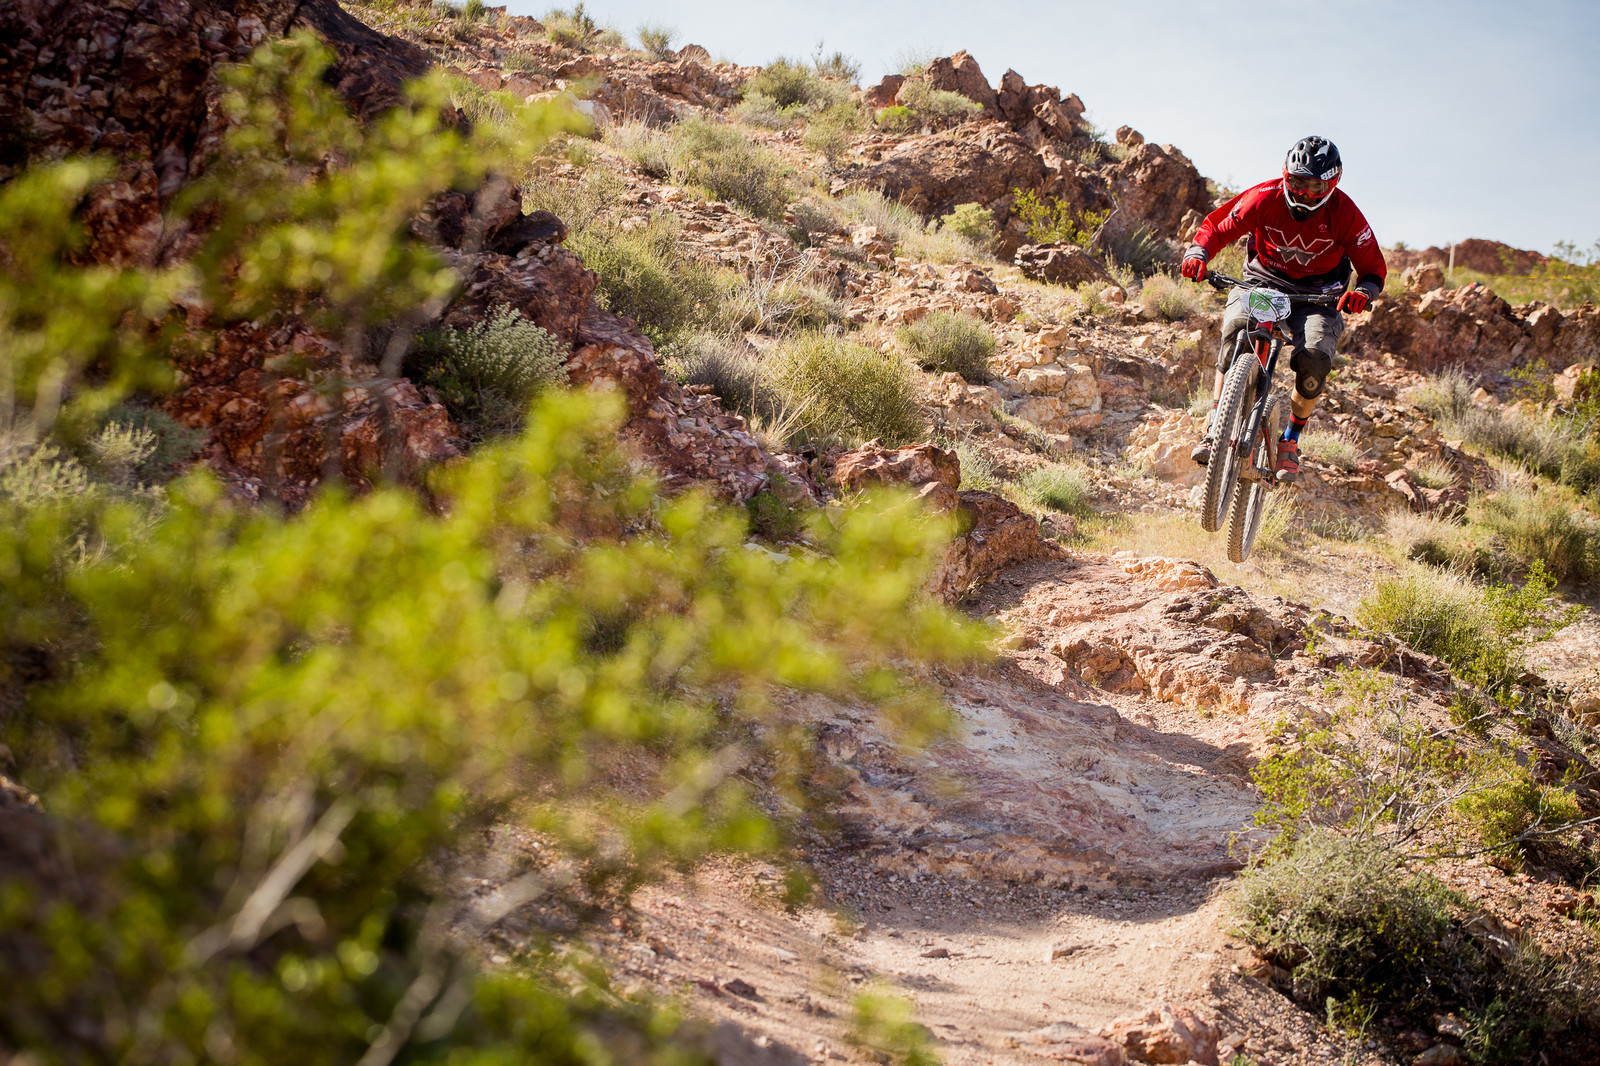 2017 Reaper Madness DH at Bootleg Canyon-14 - 2017 Reaper Madness DH Photos - Mountain Biking Pictures - Vital MTB